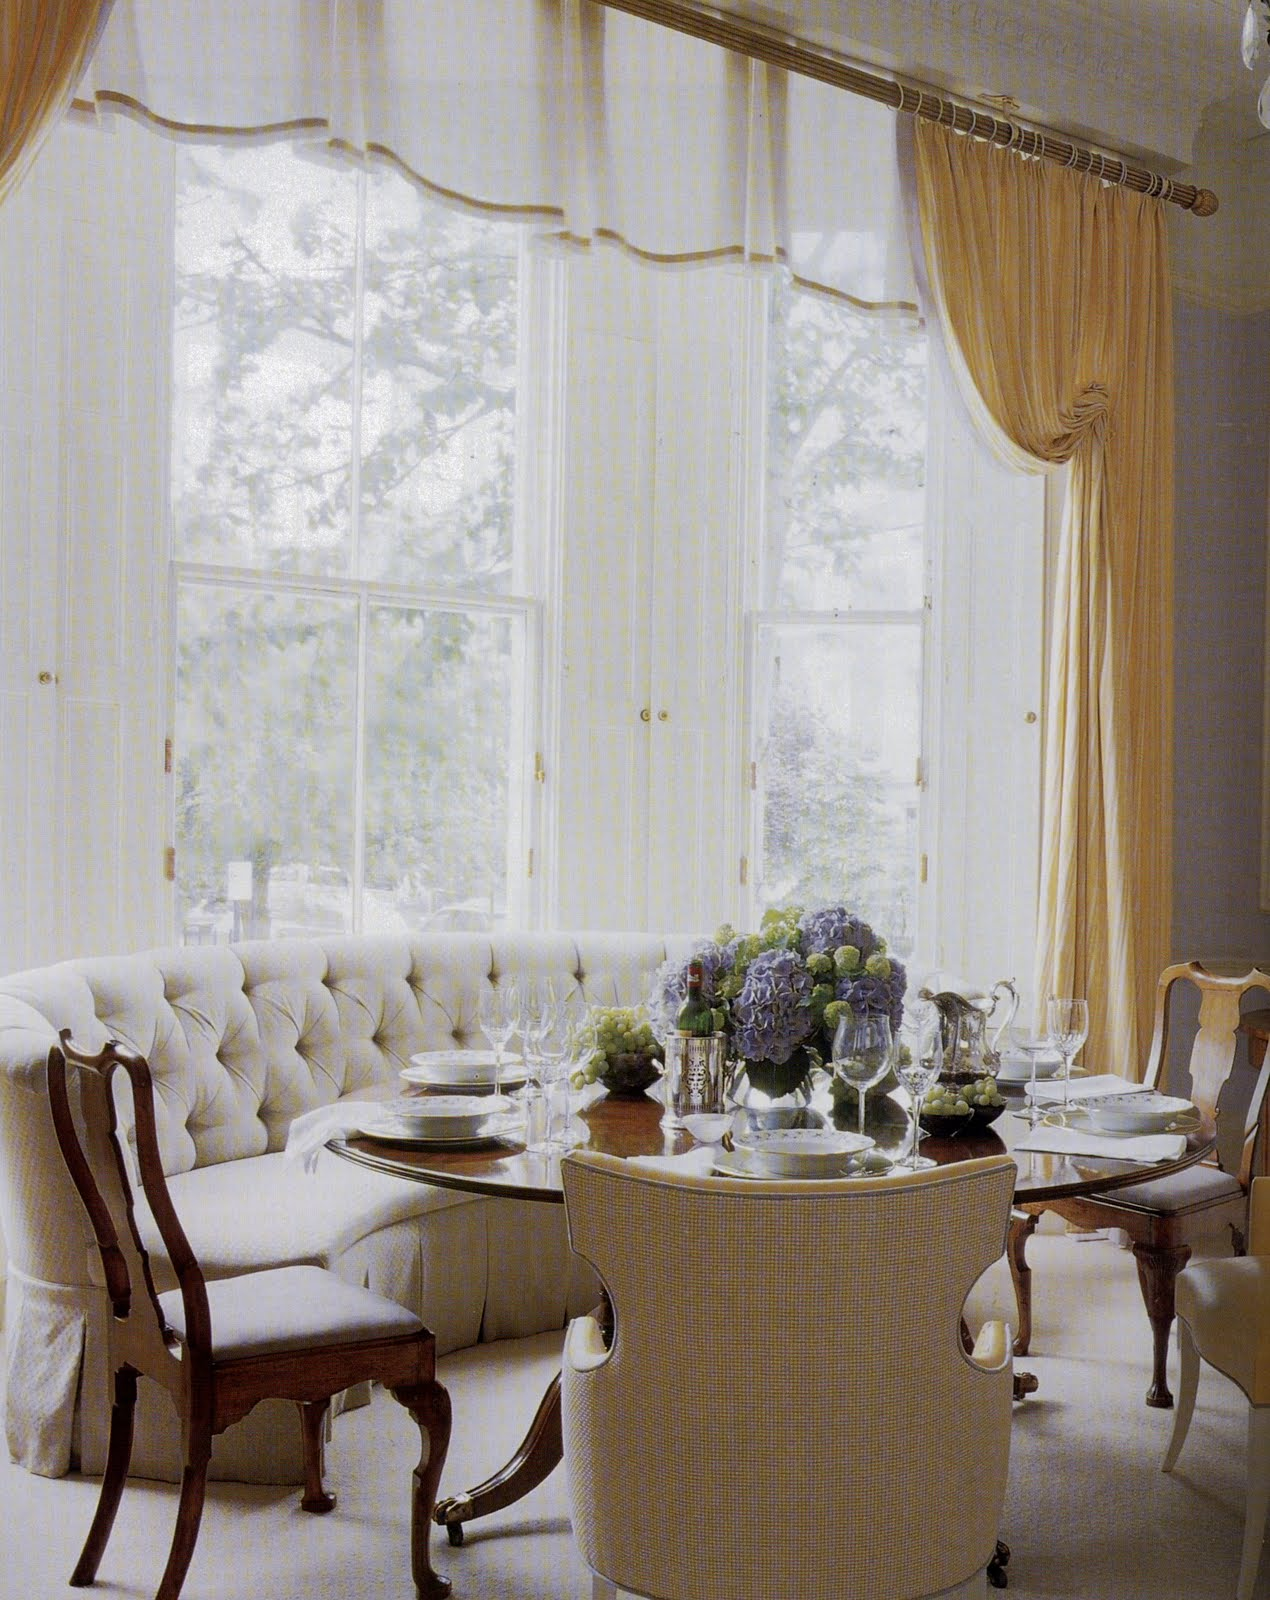 Aesthetically Thinking Beautiful Banquettes. Cheap Hotels Rooms. White Dining Room Furniture. Decorative Wrought Iron Wall Panels. Tall Decorative Vases. Wall Decor. Room Safe. Carefree Add A Room. Outdoor Living Room Furniture